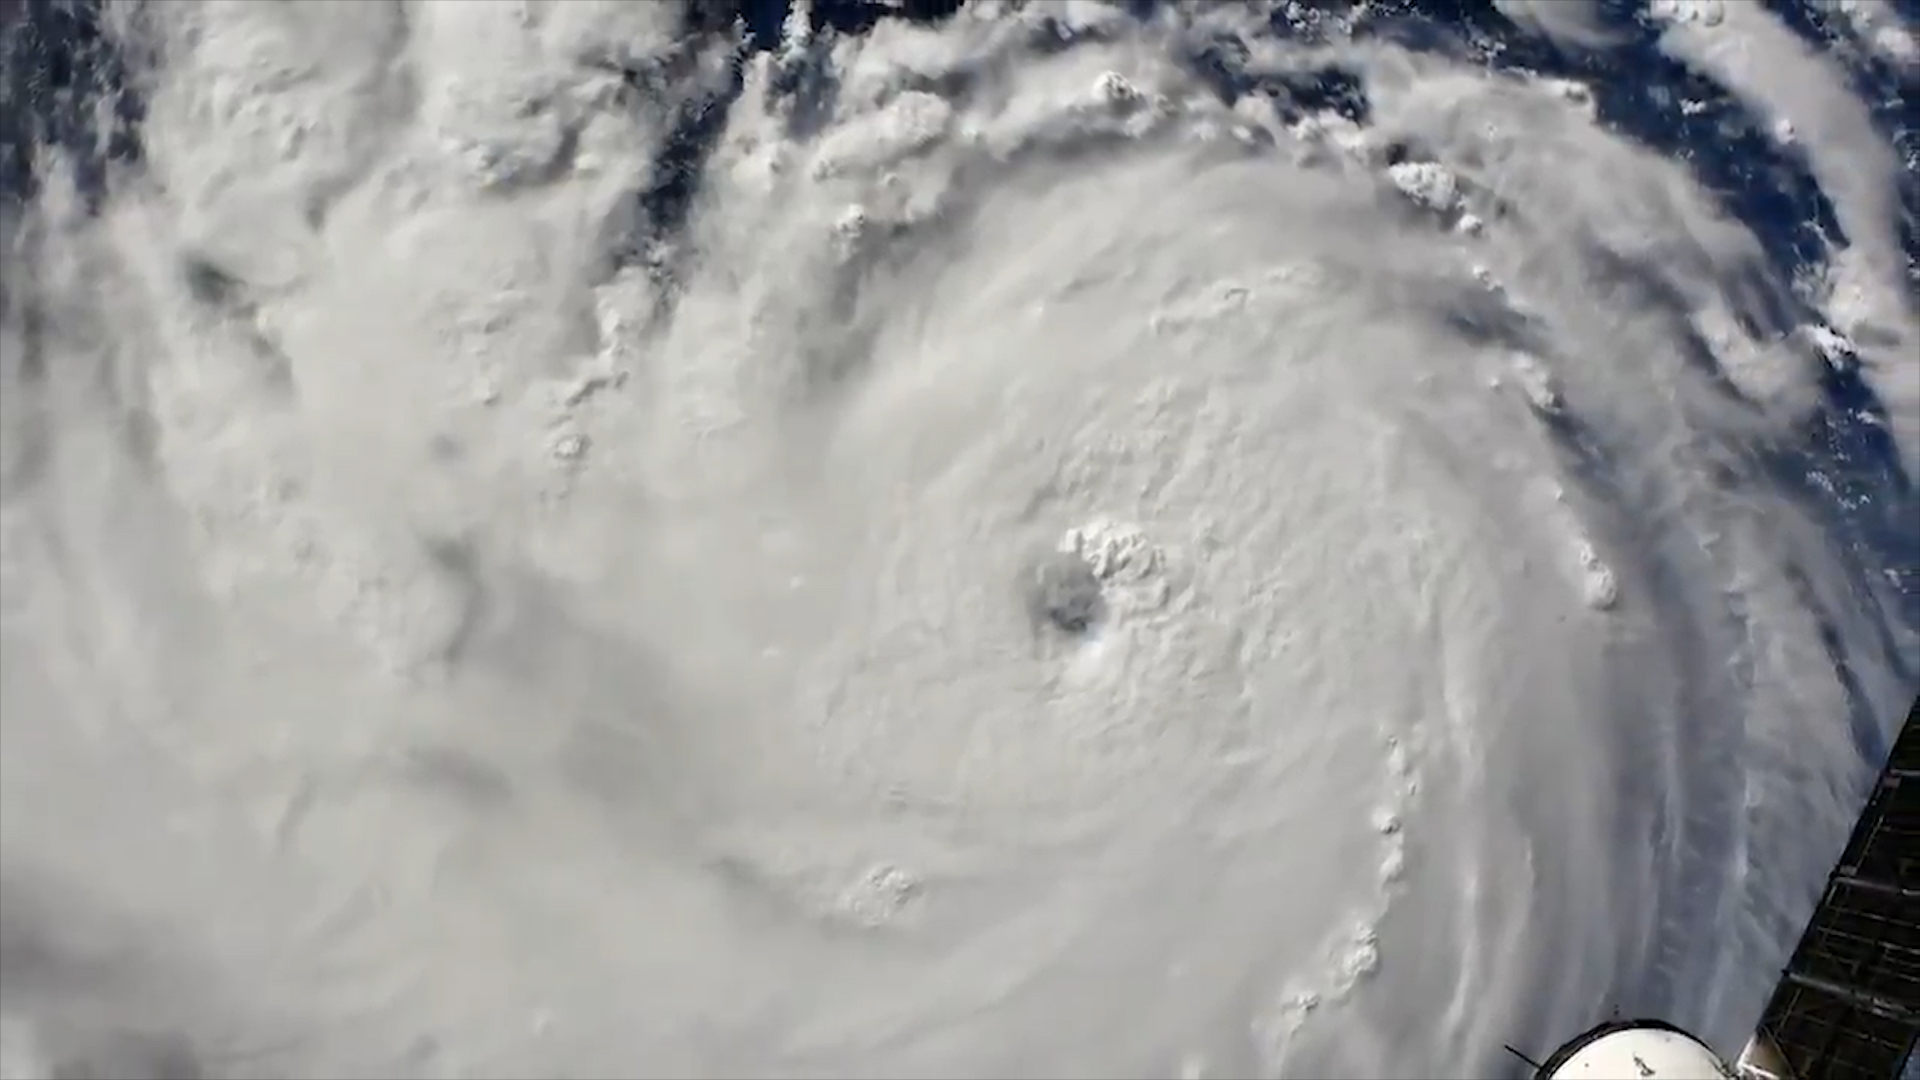 Hurricane Florence EMERGENCY: NASA reveals terrifying photos of Category 4 storm